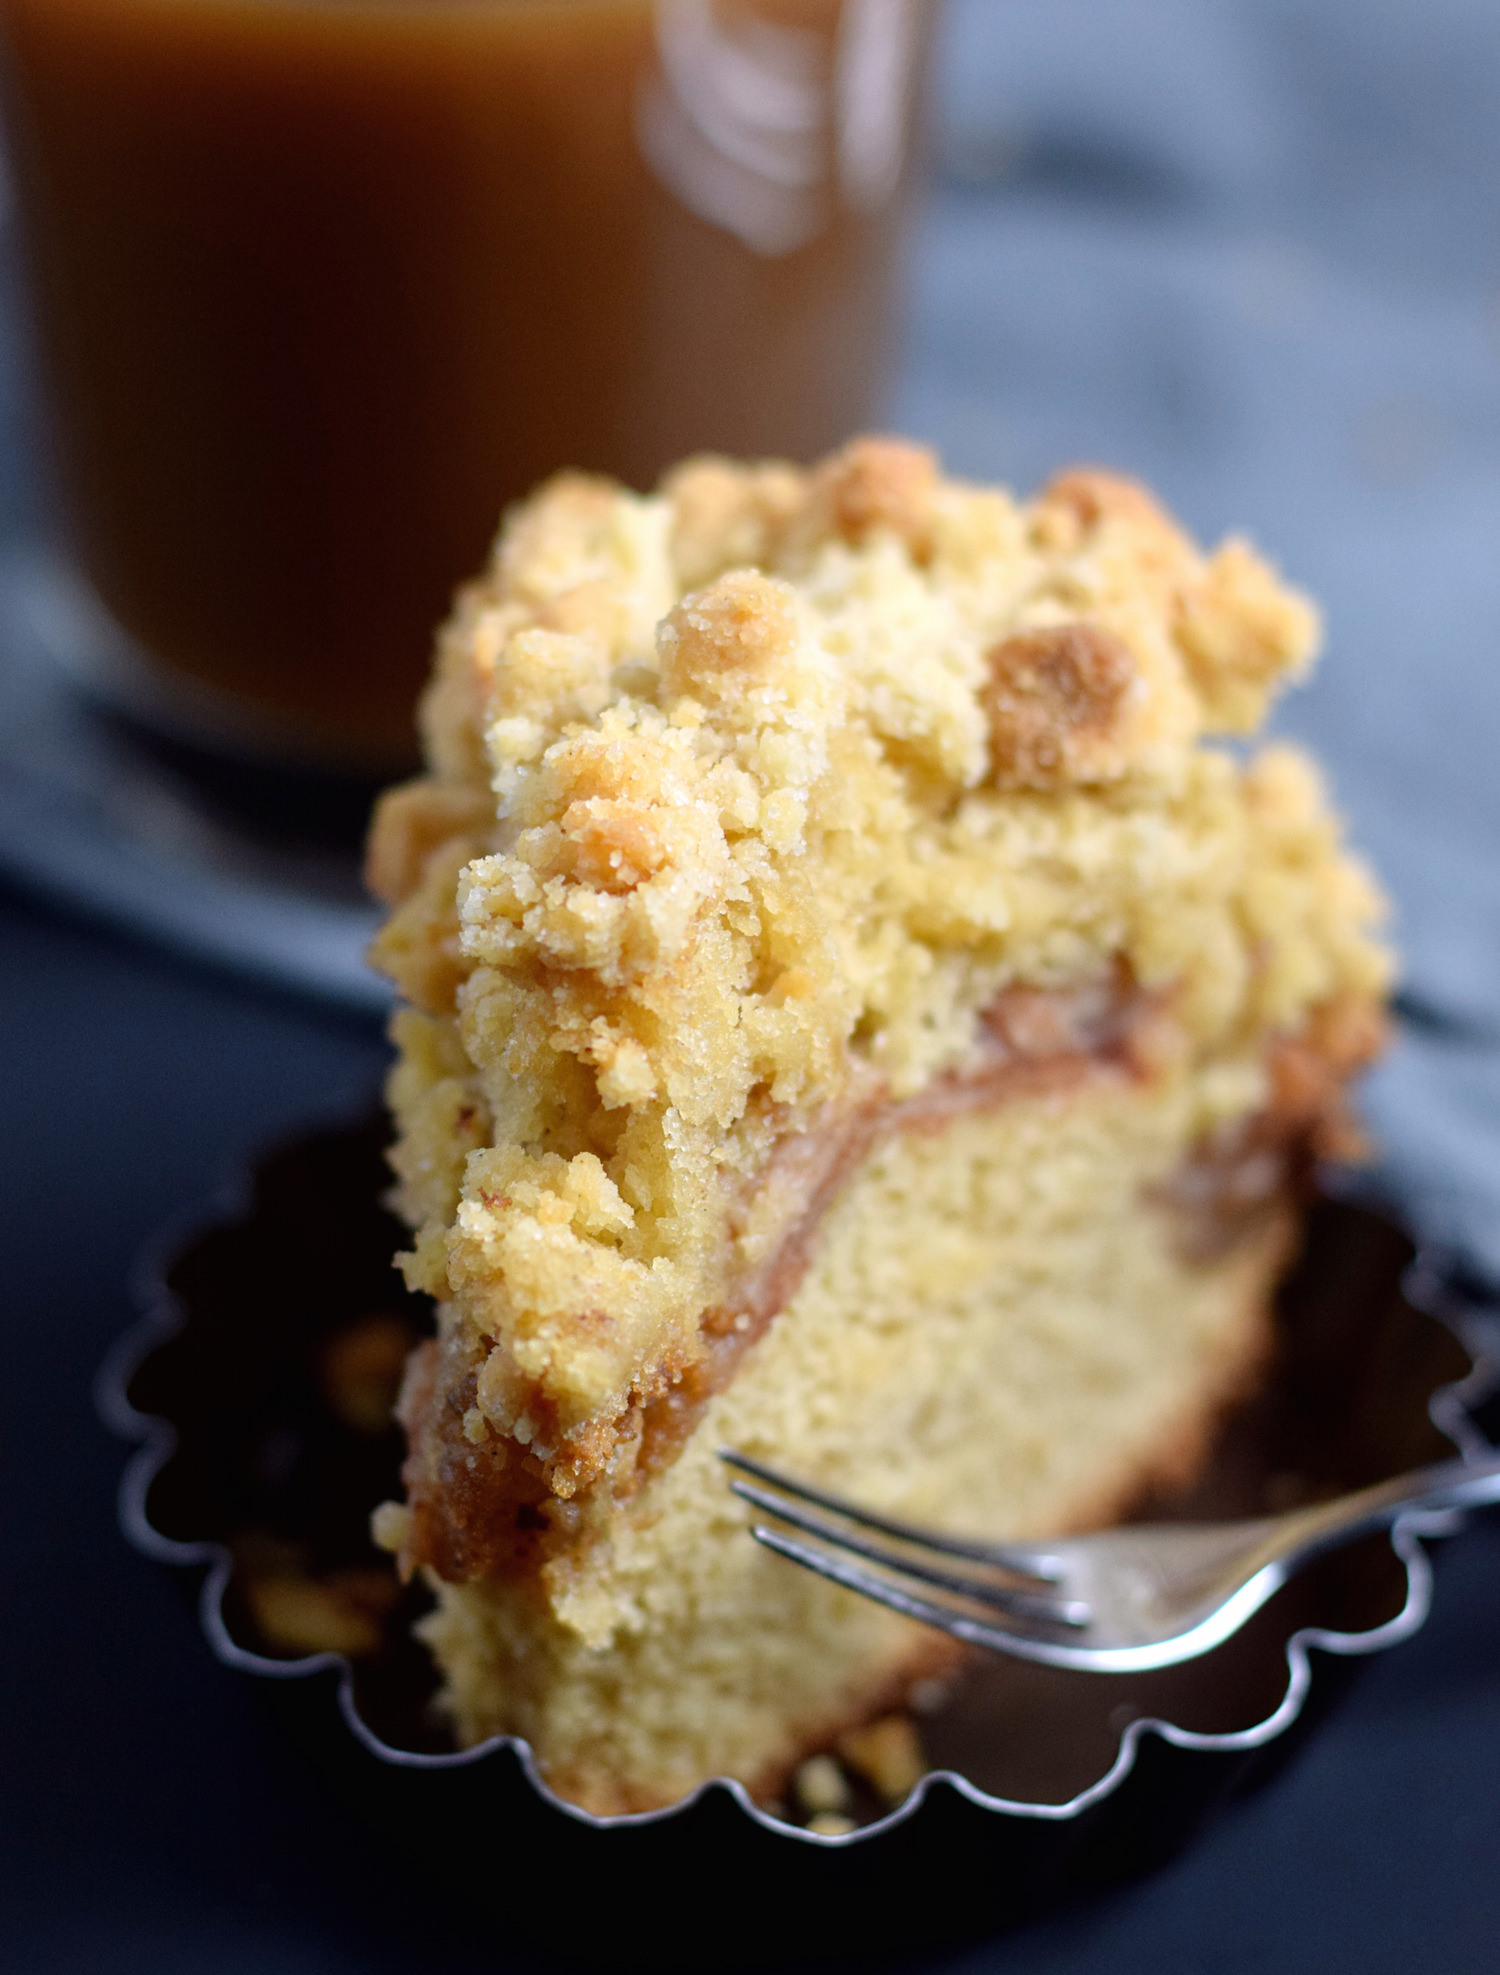 Apple Crumb Cake: delicious apple cake filled with tart, cinnamon-y apples and an amazing crumb topping. Perfect fall/winter comfort dessert. | TrufflesandTrends.com